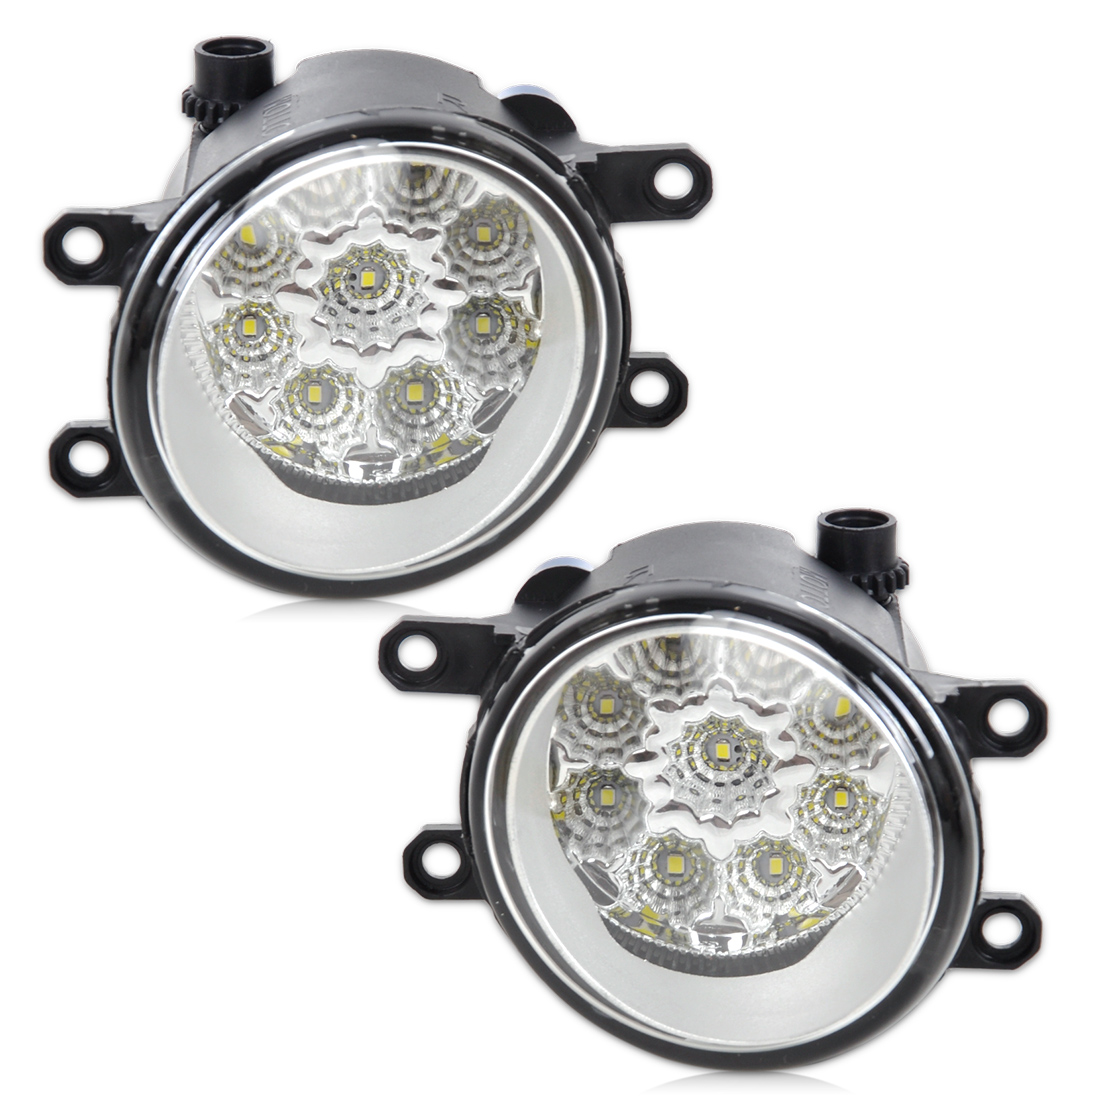 beler 2Pcs Right/Left Fog Light Lamp 55W 9-LED DRL Daytime Running Lights 81210-06050 for Toyota Camry Corolla RAV 4 Lexus cawanerl 2 pieces car styling left right fog light led drl daytime running lamp white 12v for toyota camry 2006 2012